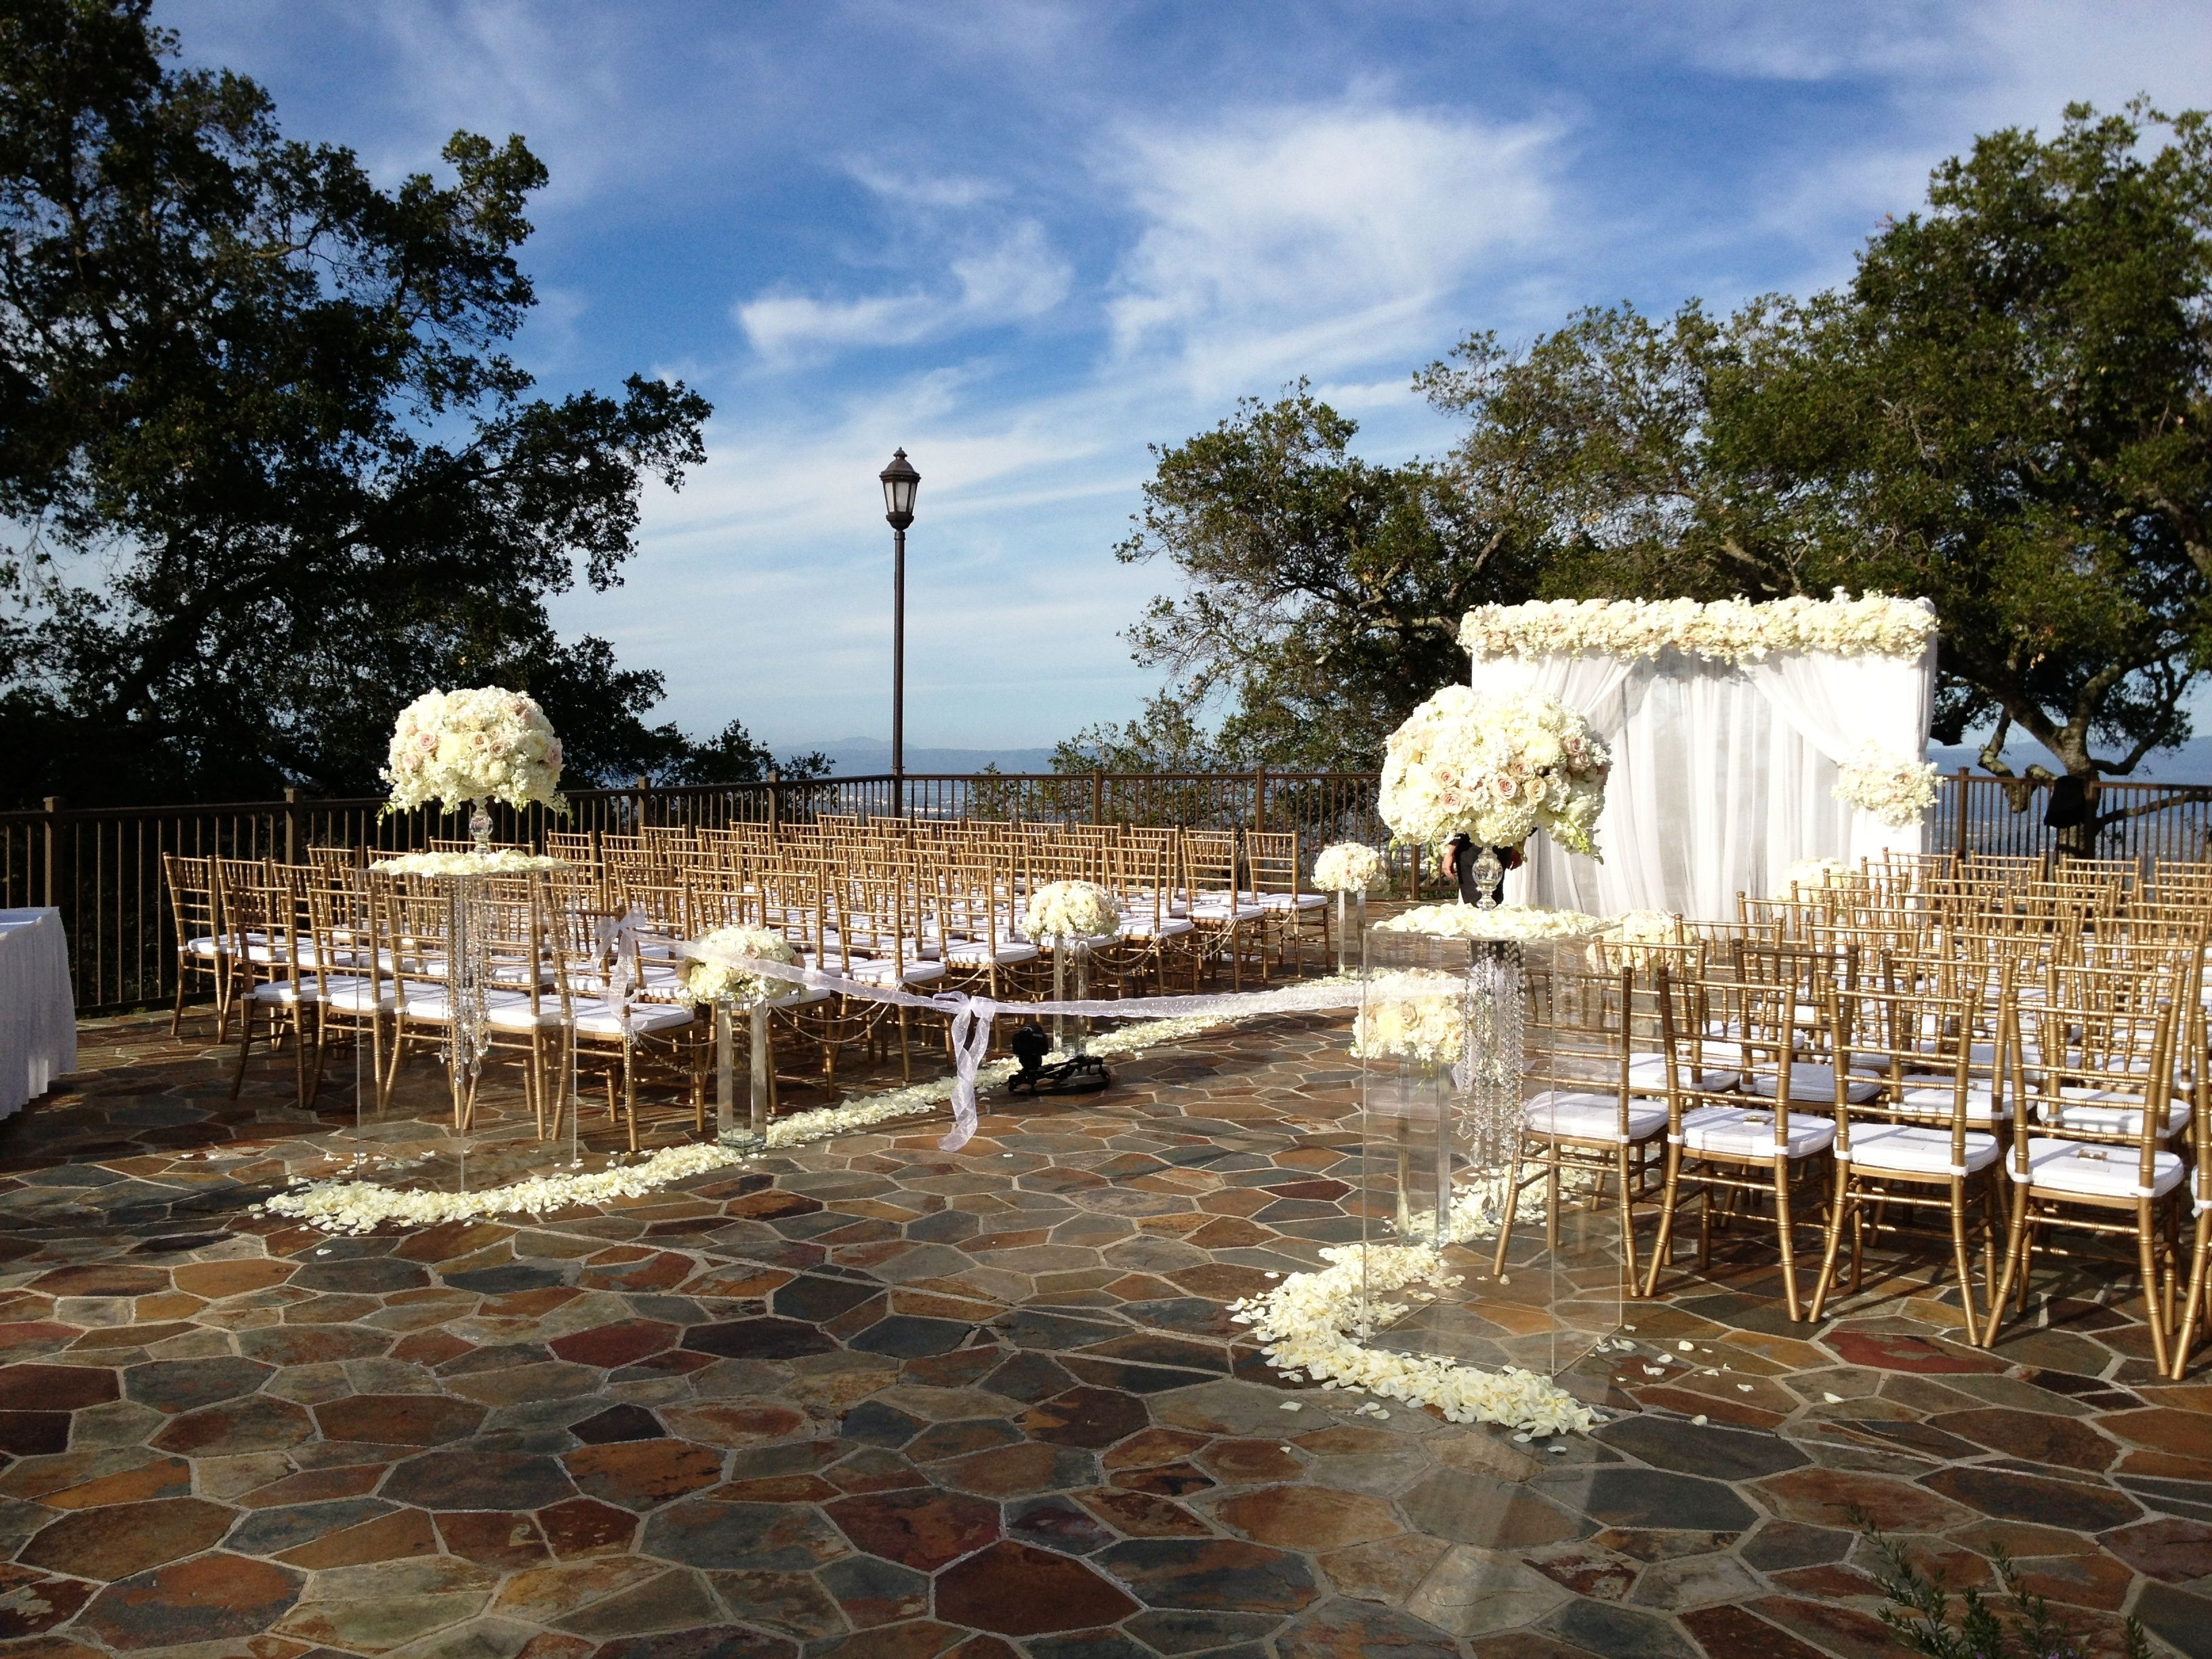 Vista Deck The Mountain Winery Saratoga Ca Wedding Venue